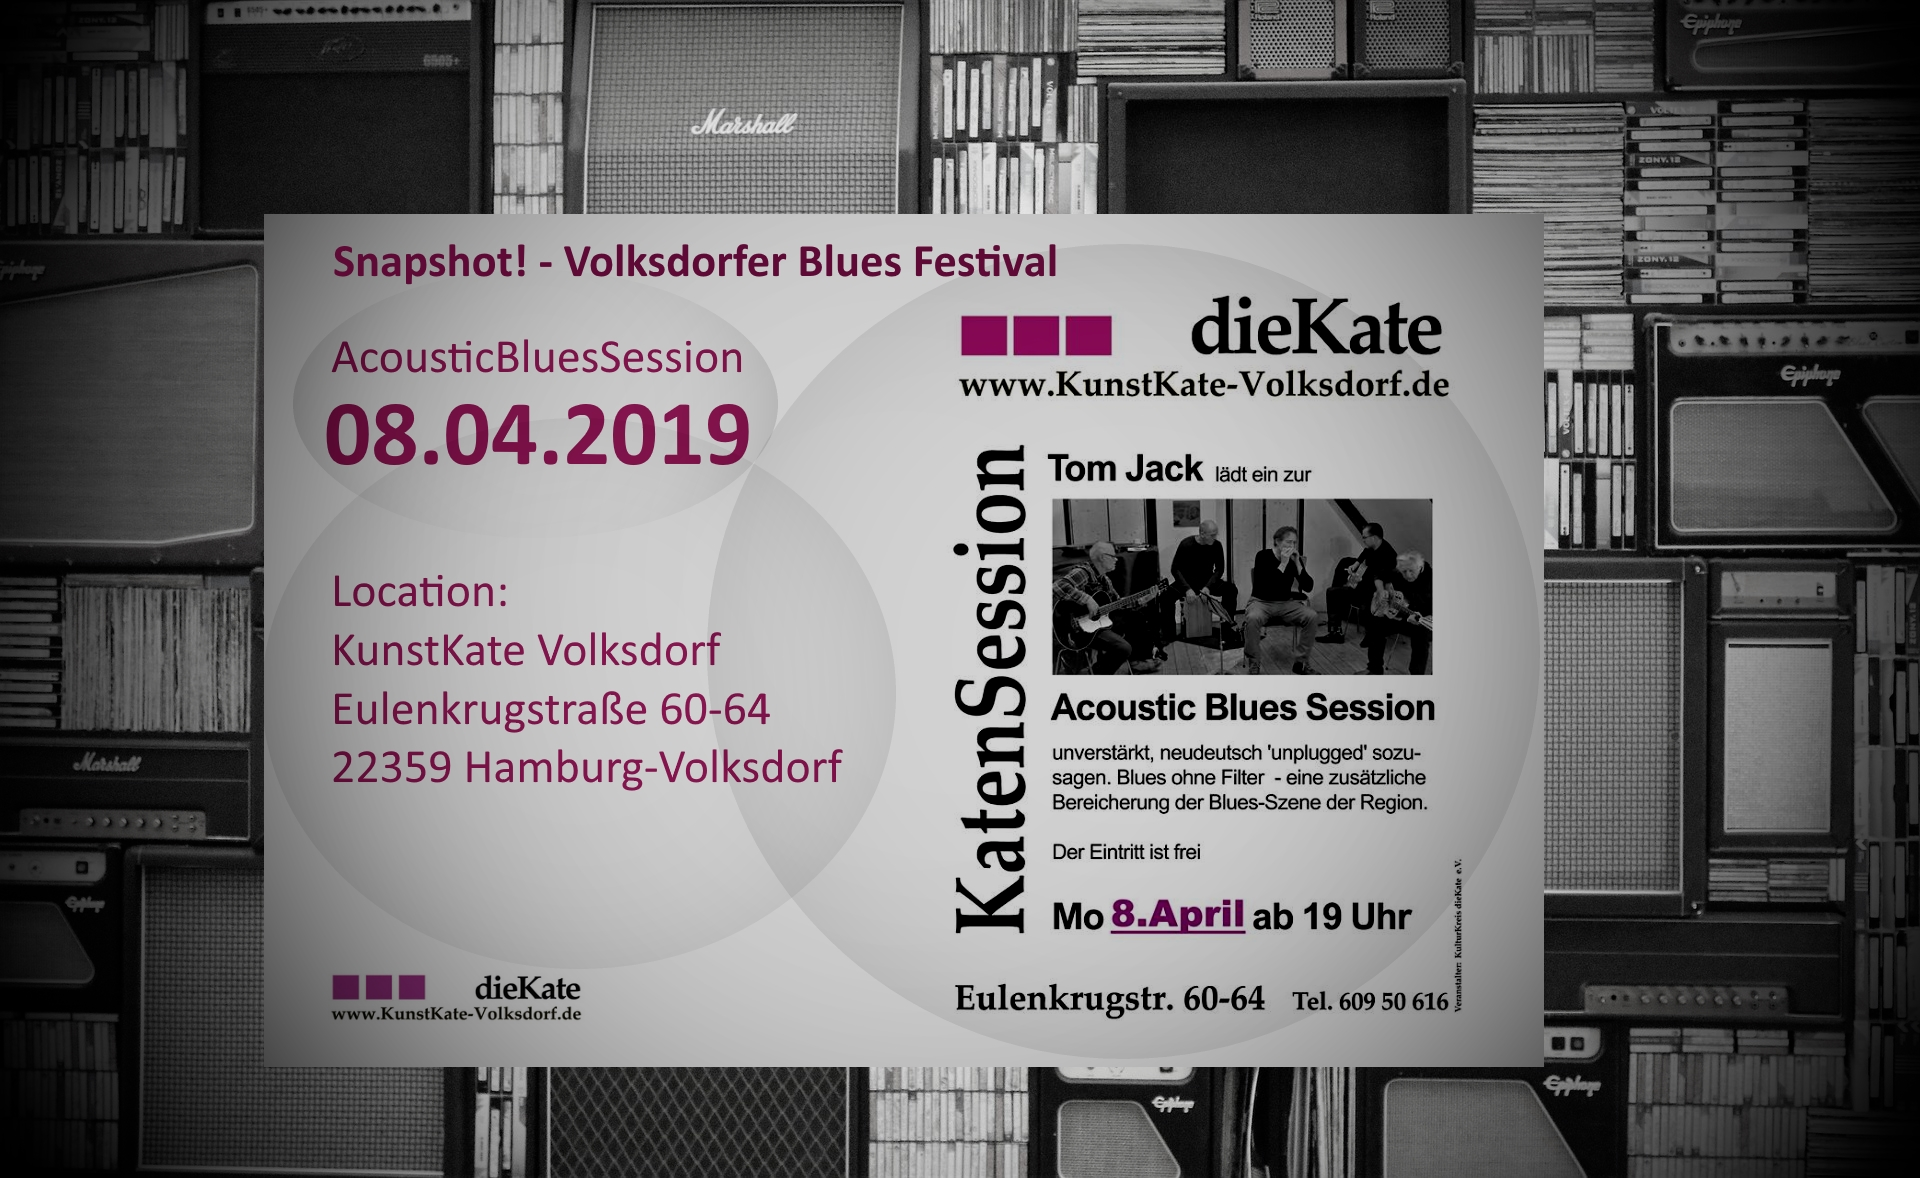 08.04.2019 – Acoustic Blues Session (ABS) – KunstKate Volksdorf